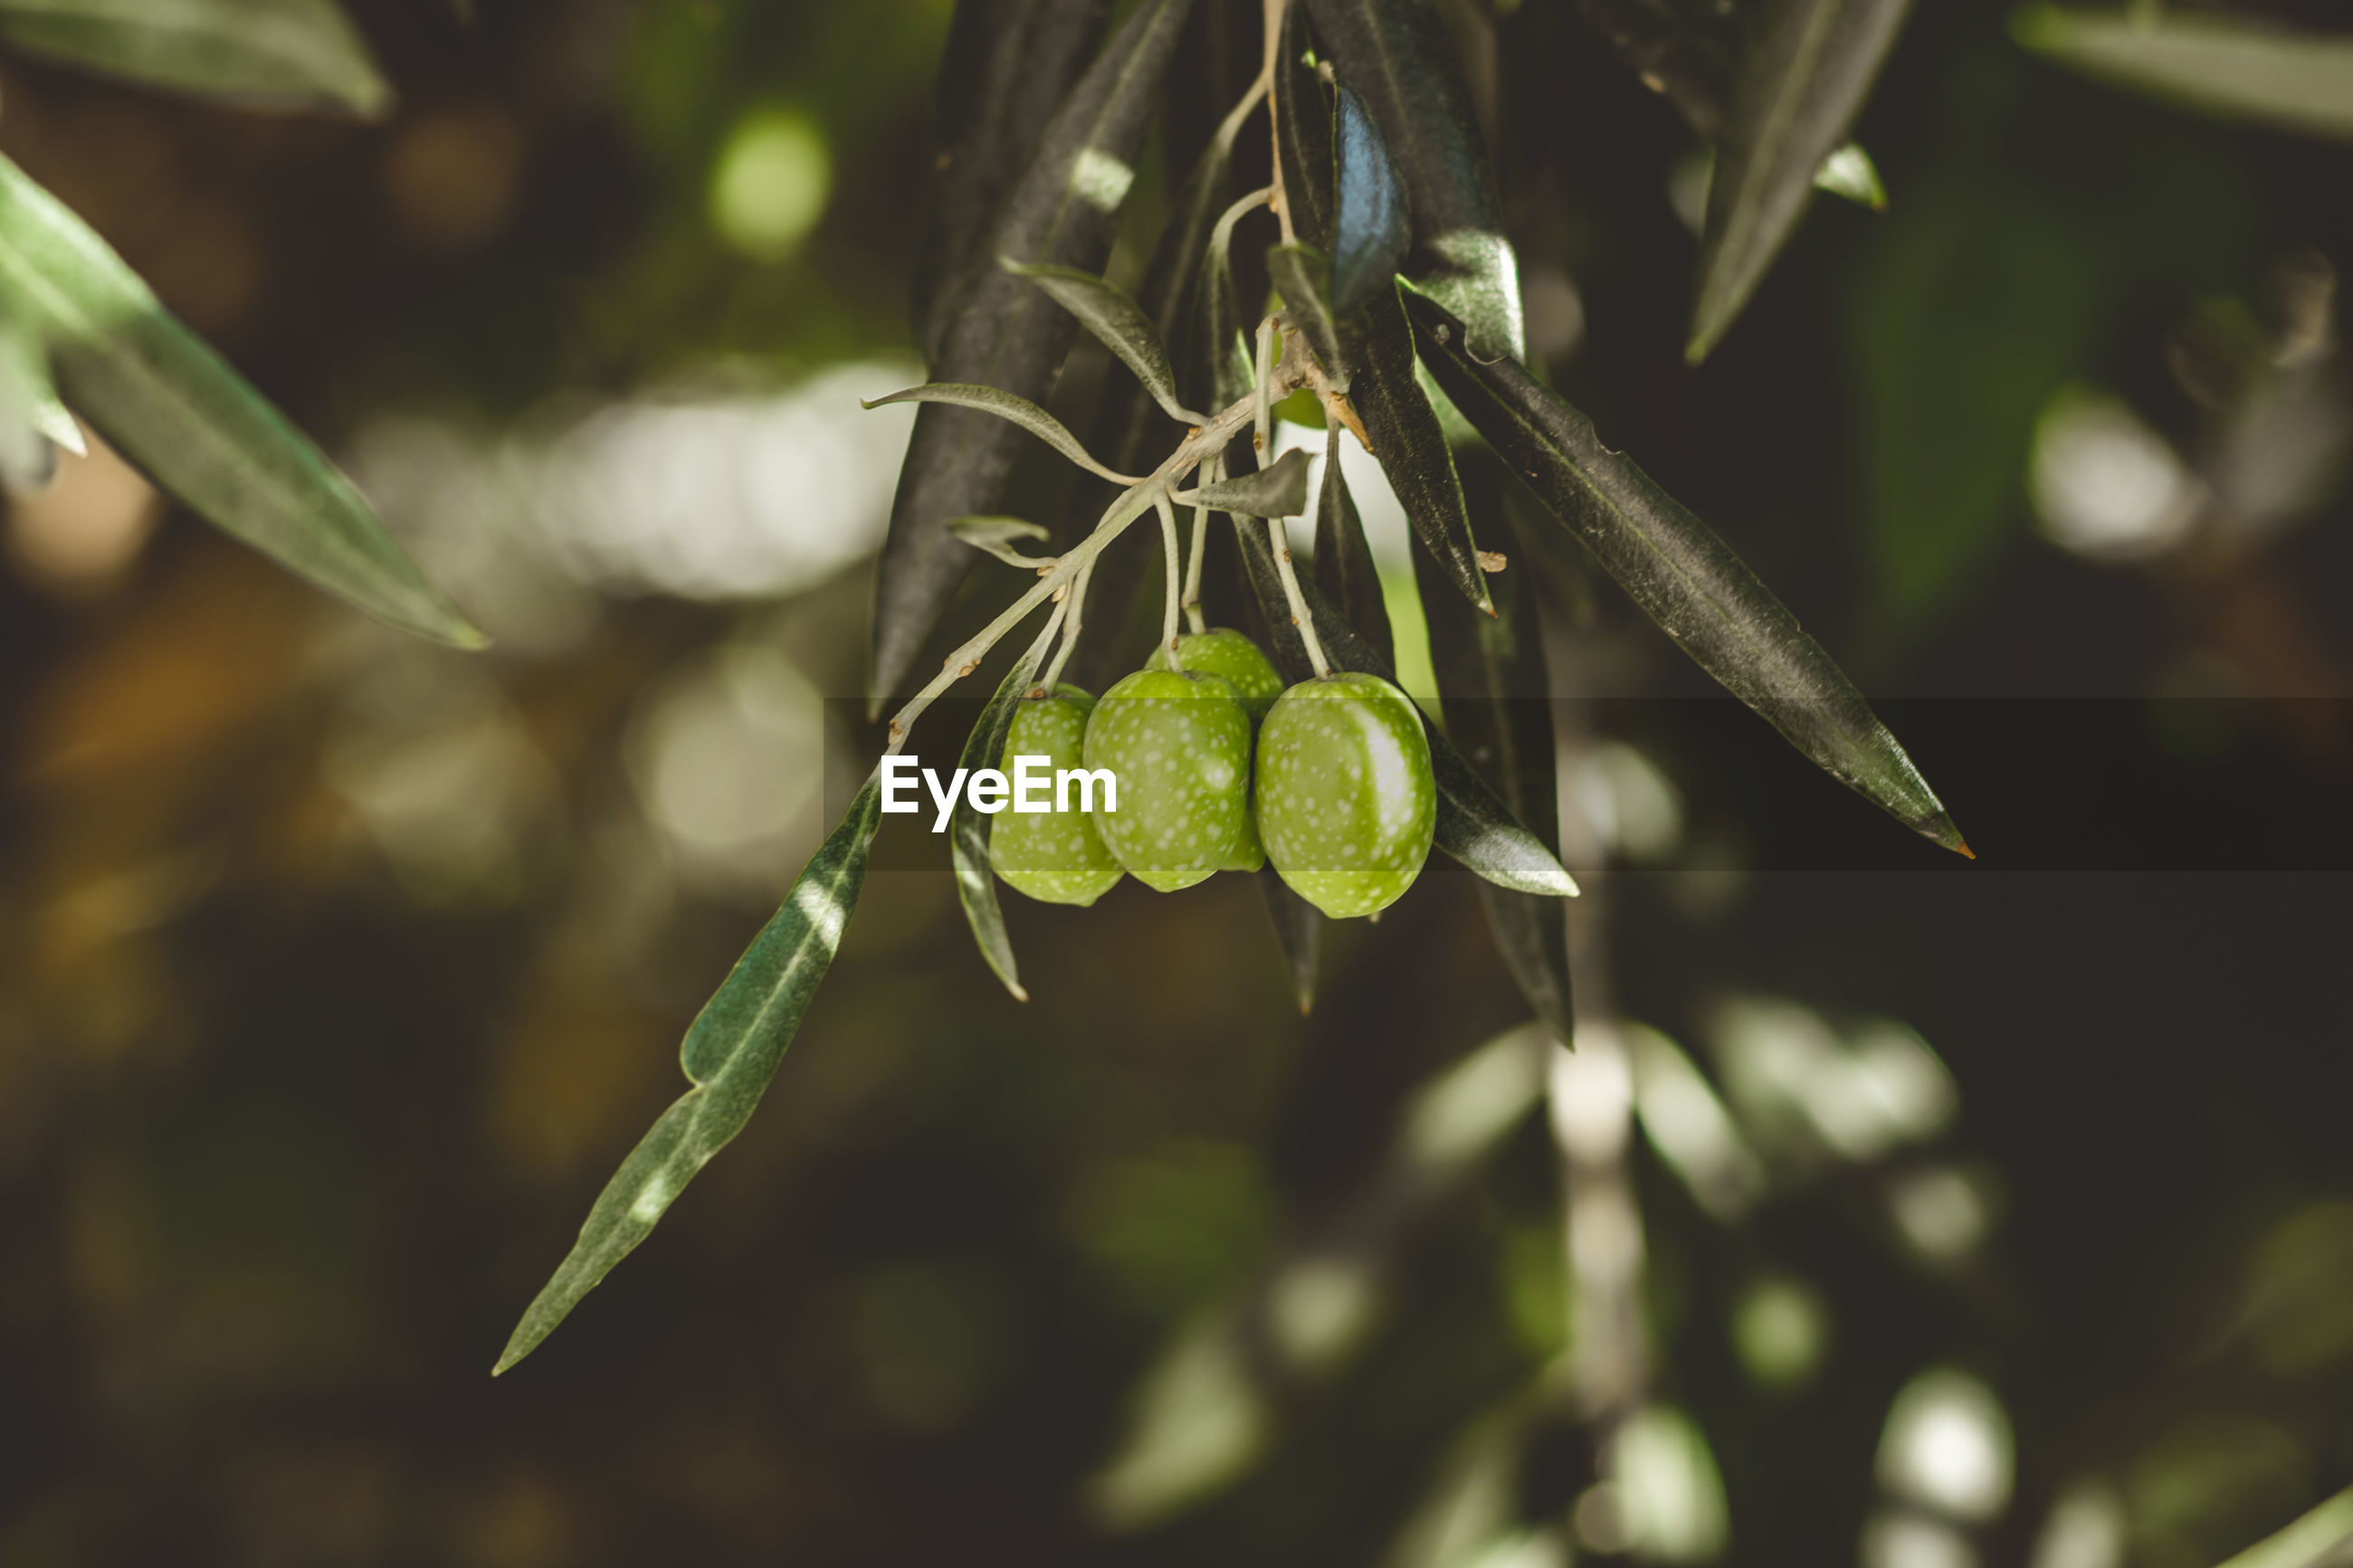 Ripe green olives on the tree.